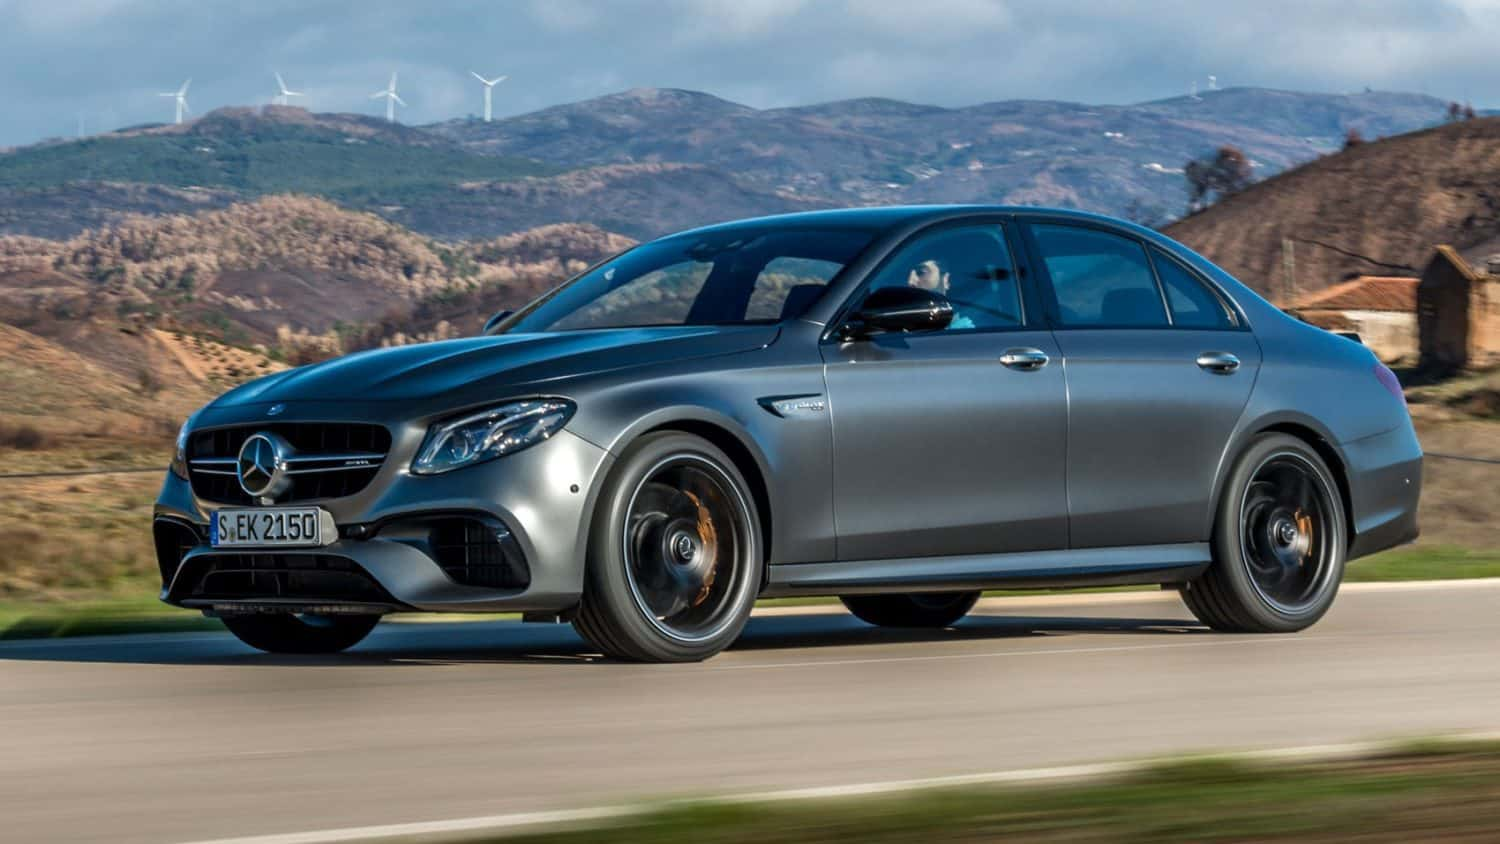 Mercedes-Benz AMG E63 S 4MATIC Launched in India